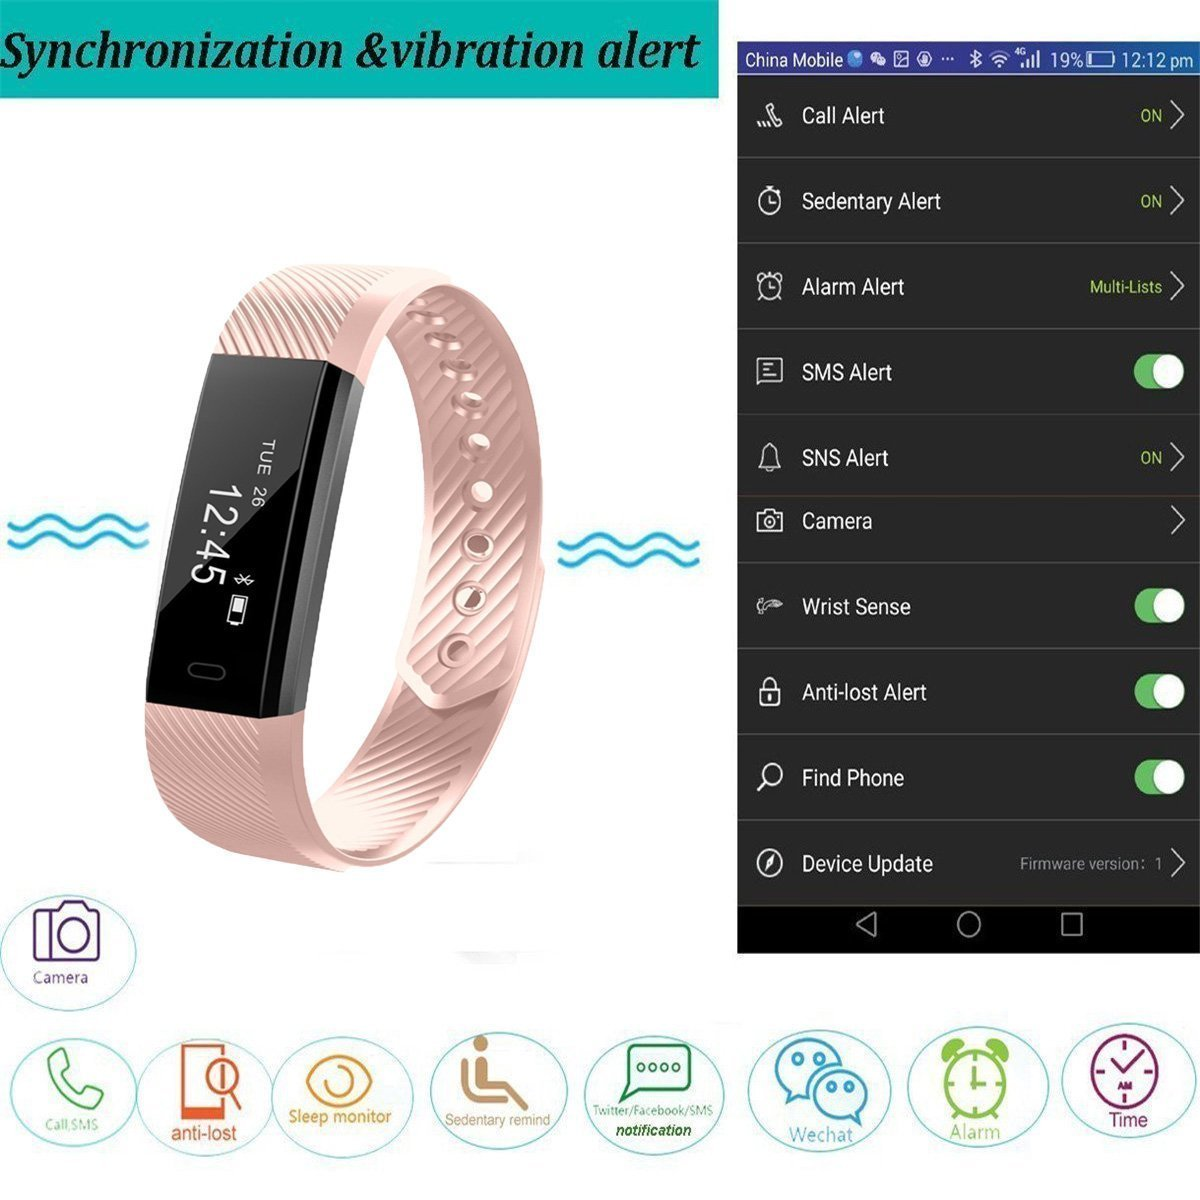 Fitness Tracker Watch, Smart Activity Tracker BluetoothPedometer Waterproof Sports Bracelet with Sleep Monitor Calorie/Step Counter for Android IOS IPhone Samsung Nexus LG and More (PInk)